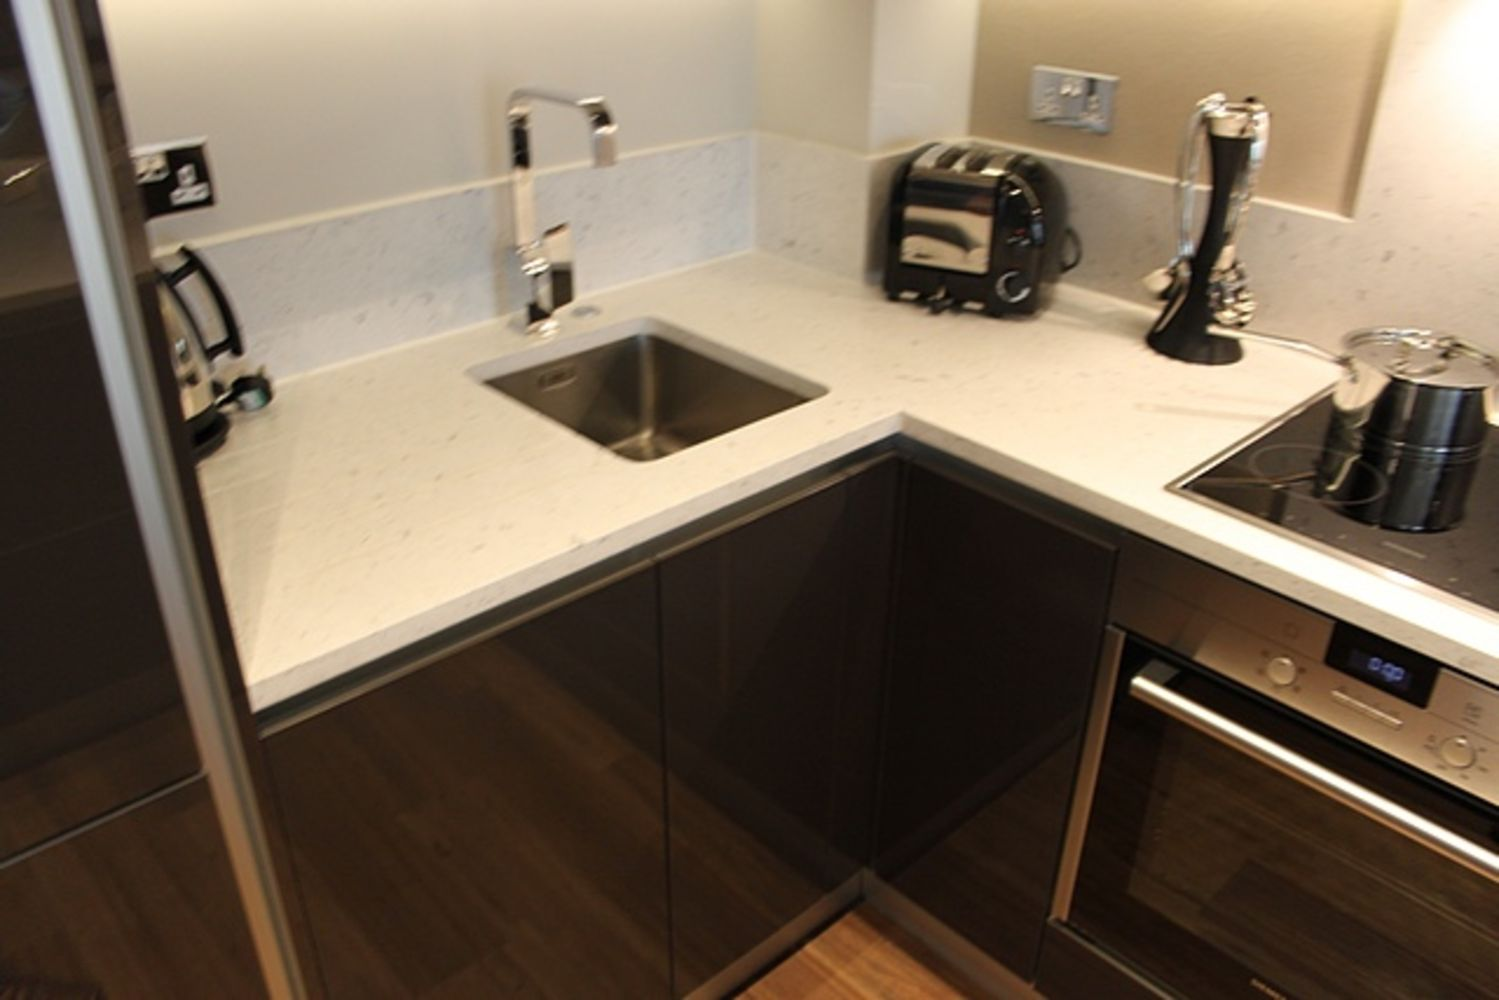 Catering Equipment Auction - & Show Apartment Kitchen Excellent Selection Of Equipment tp be Offered For Sale - Delivery Available